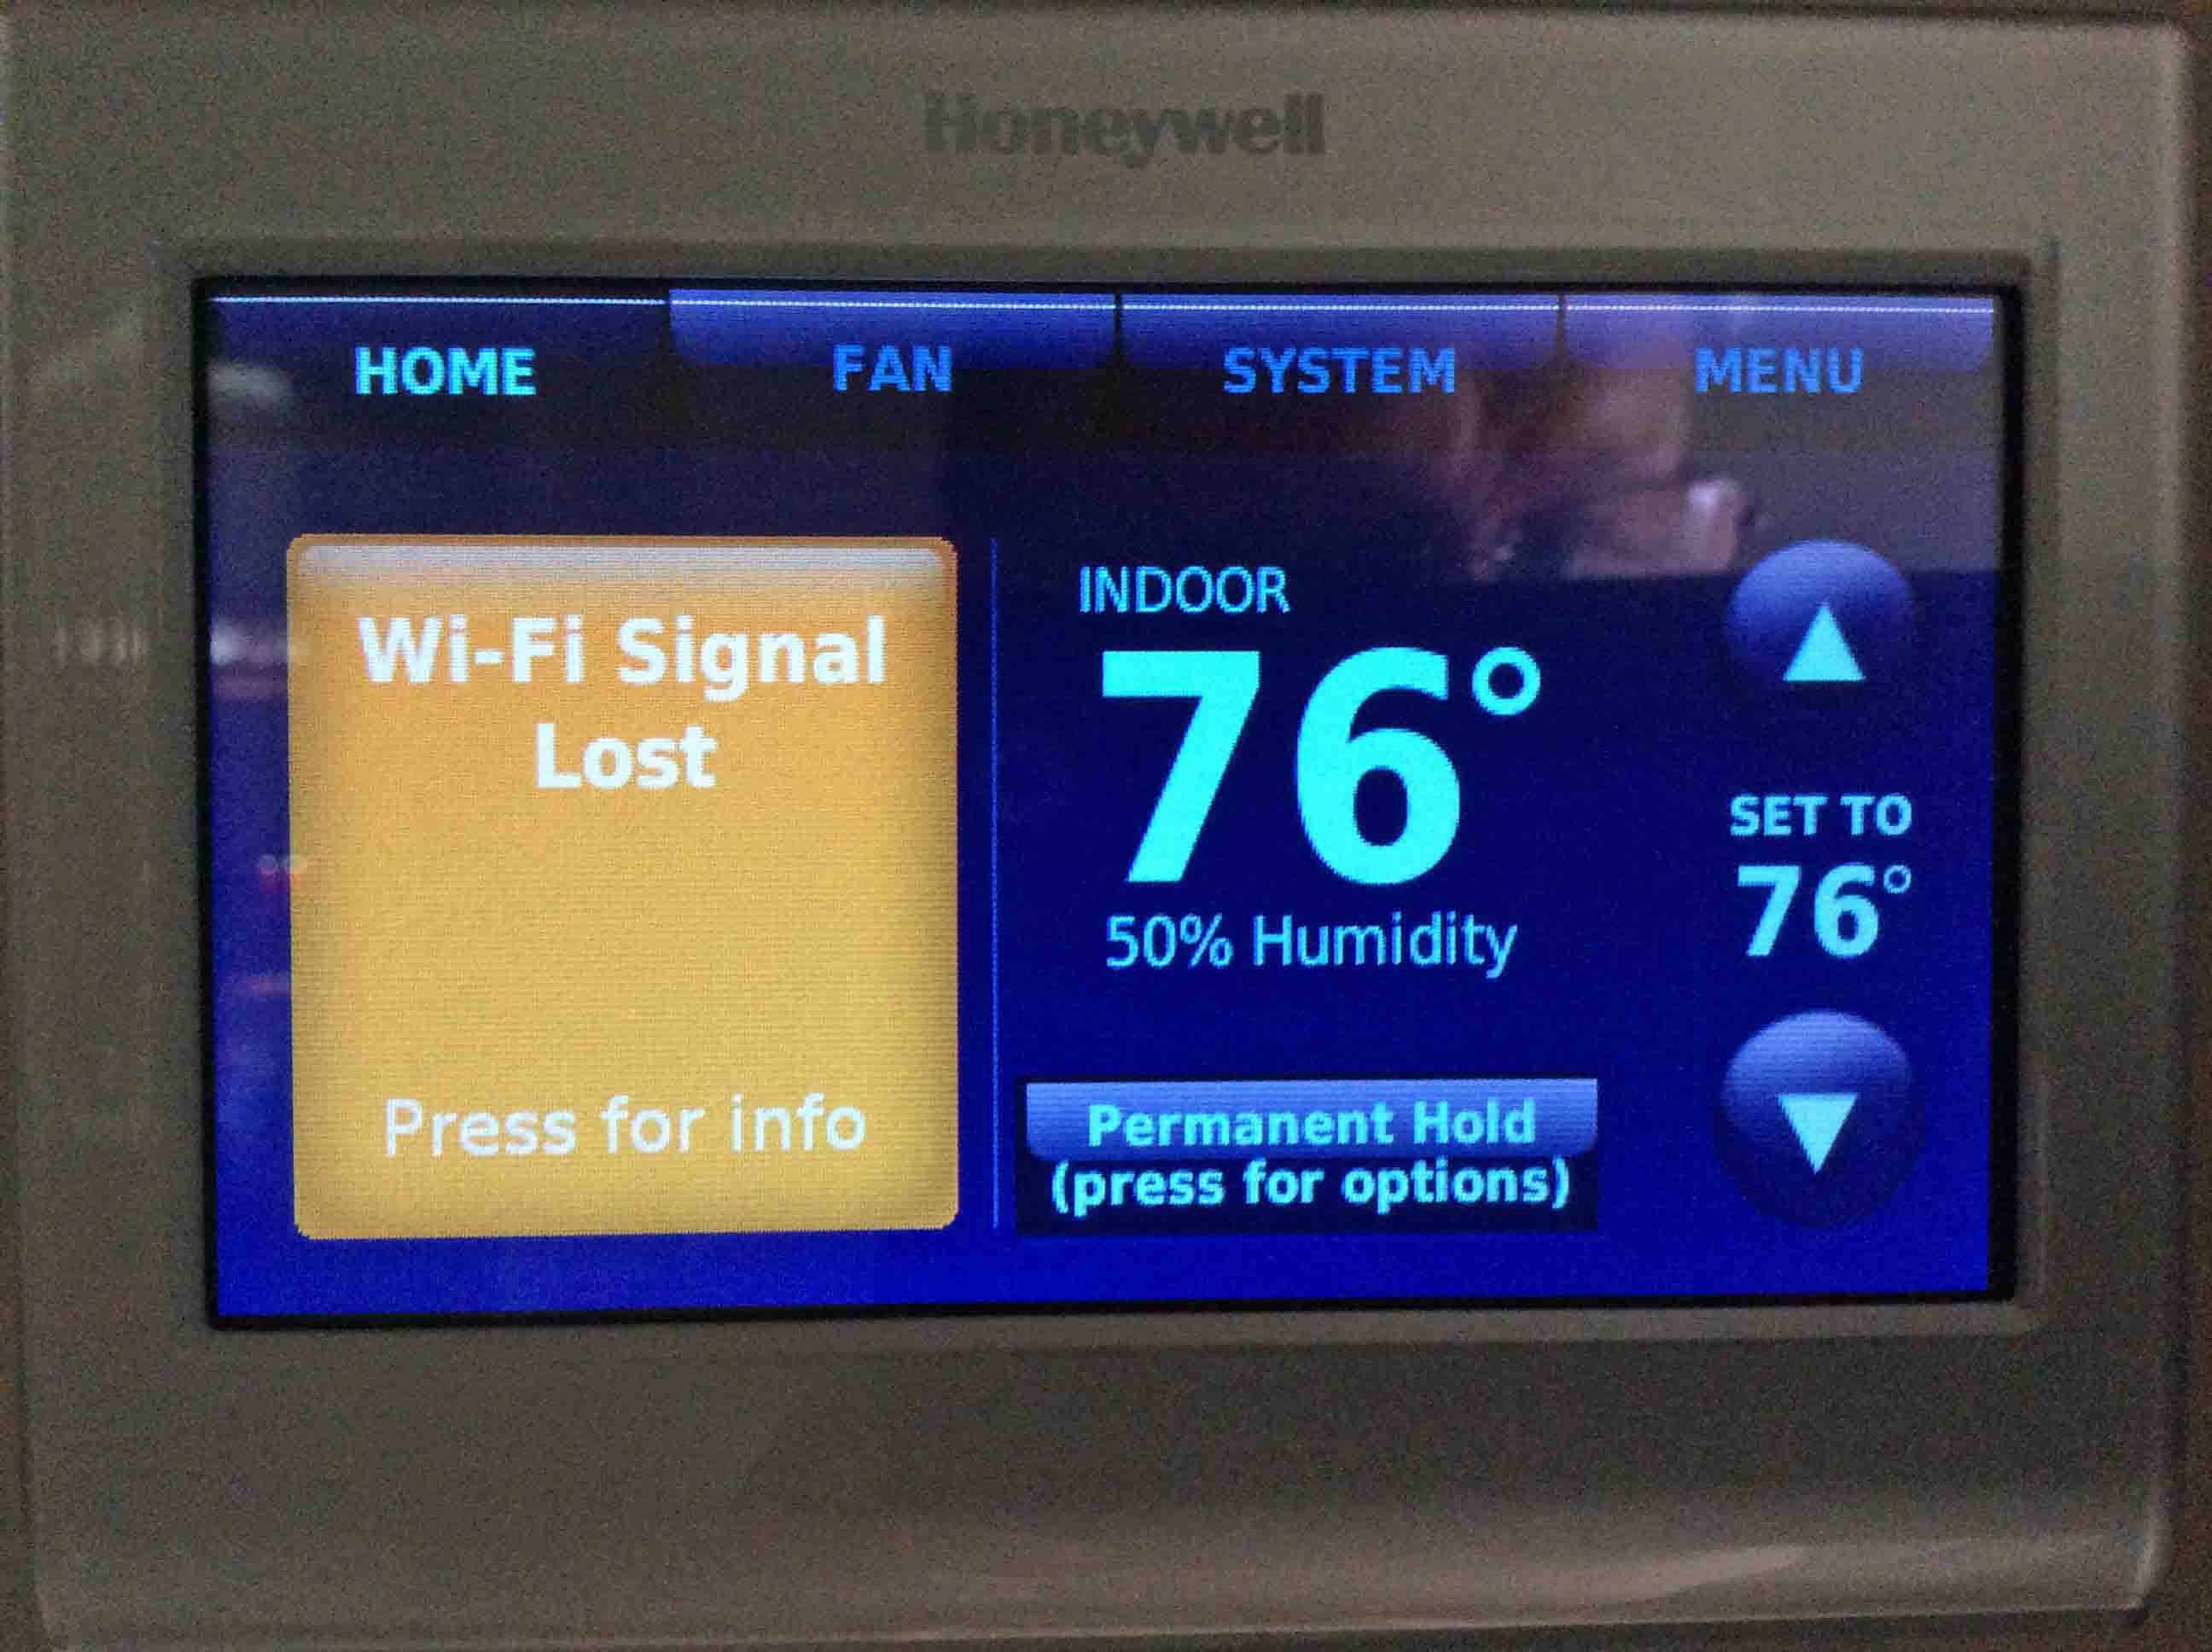 Honeywell Wifi Thermostat Manual Data Wiring Diagrams Guide Housing And Residence Life Unc Charlotte Troubleshooting Problems Rth9580wf Tom S Rh Tomstek Us